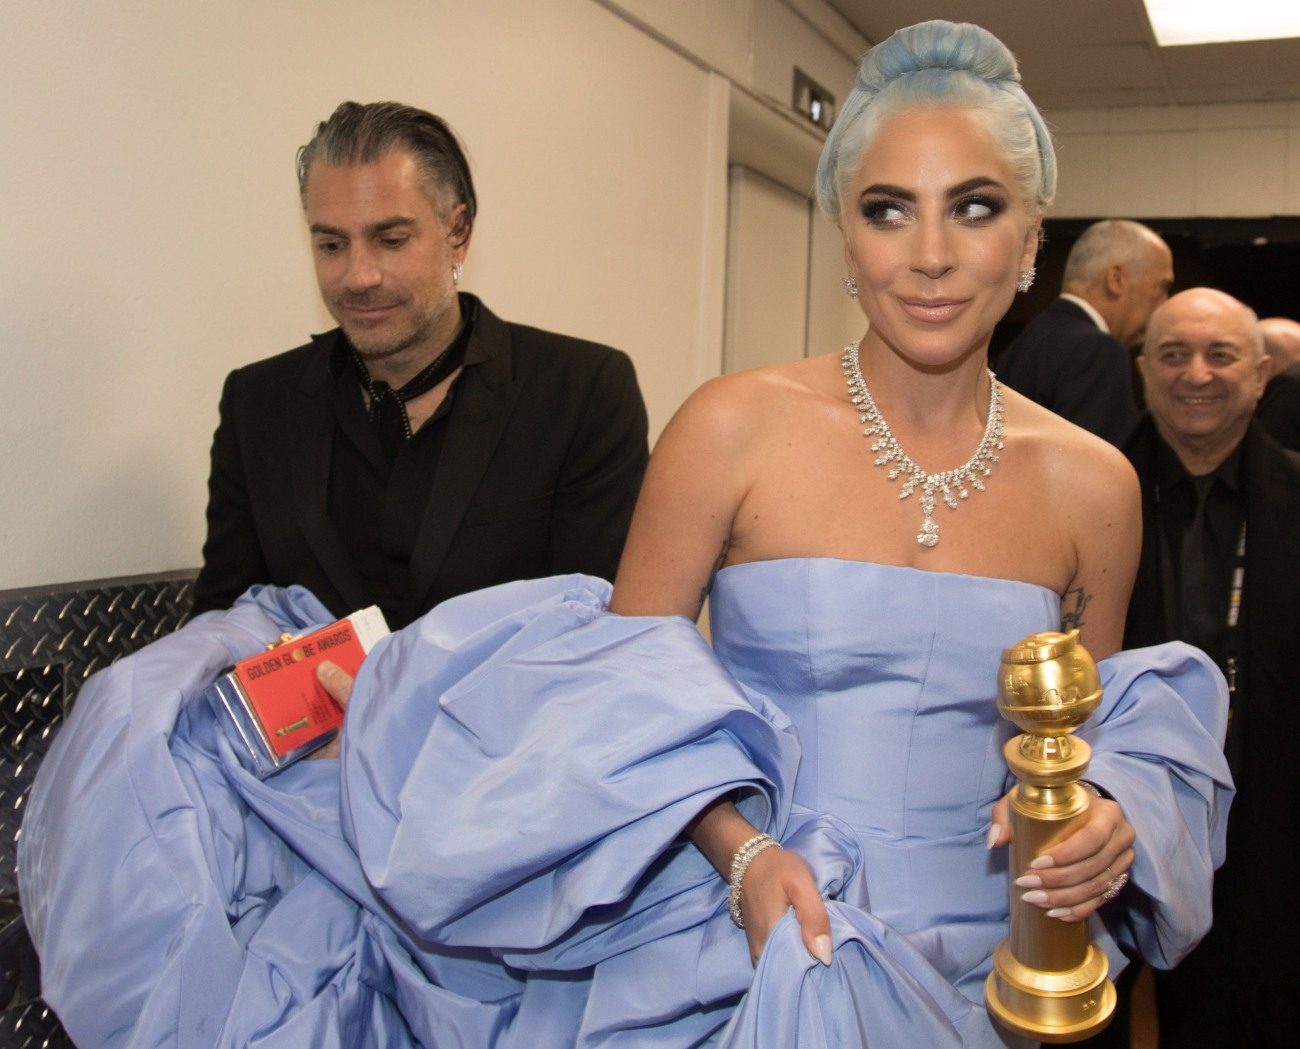 76th Annual Golden Globe Awards - 2019 Backstage